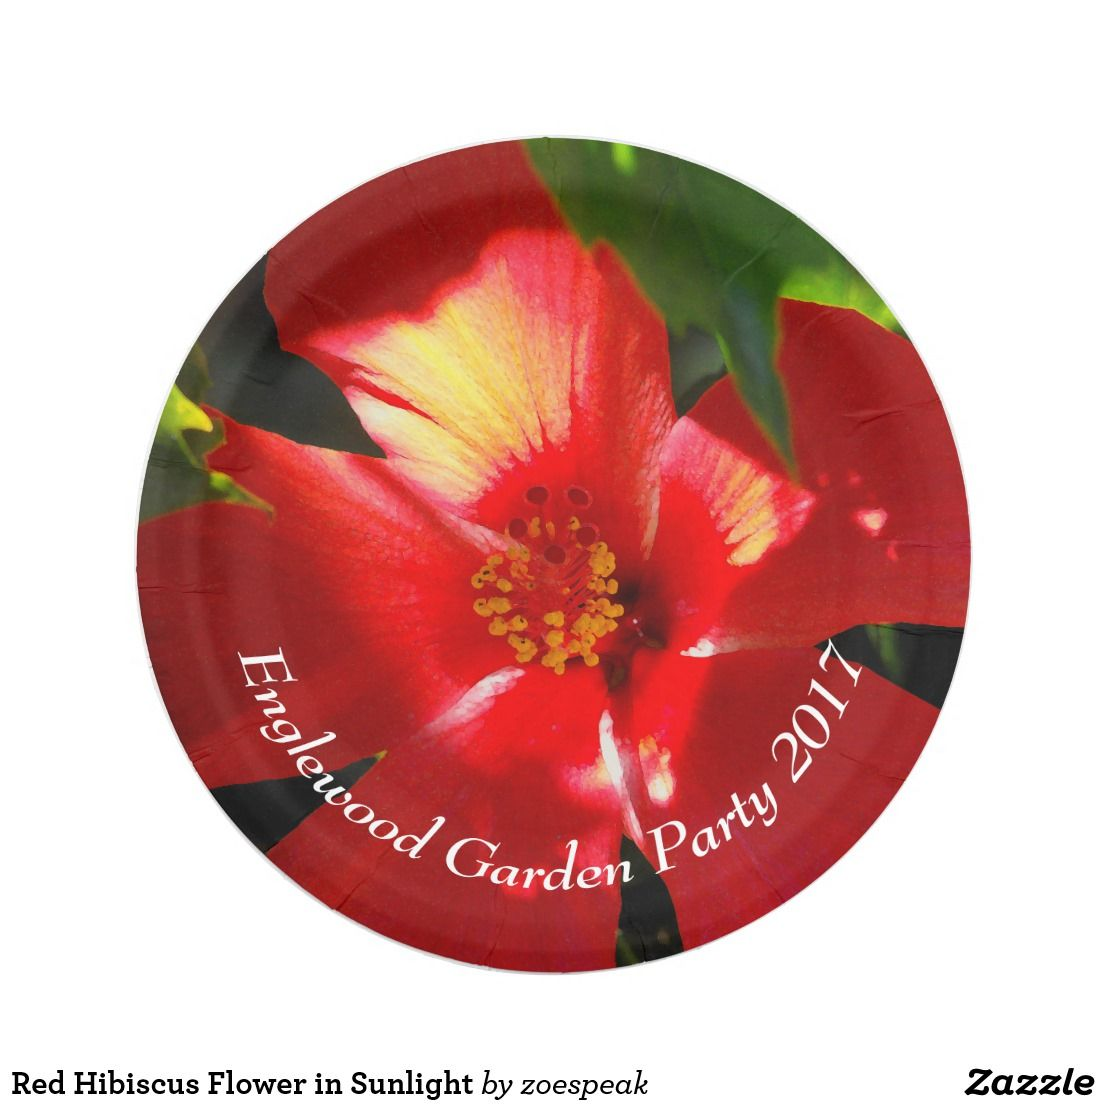 Red Hibiscus Flower in Sunlight Customizable Paper Plates - 25% off with code ZCLASSOF2017 from  sc 1 st  Pinterest & Red Hibiscus Flower in Sunlight Customizable Paper Plates - 25% off ...